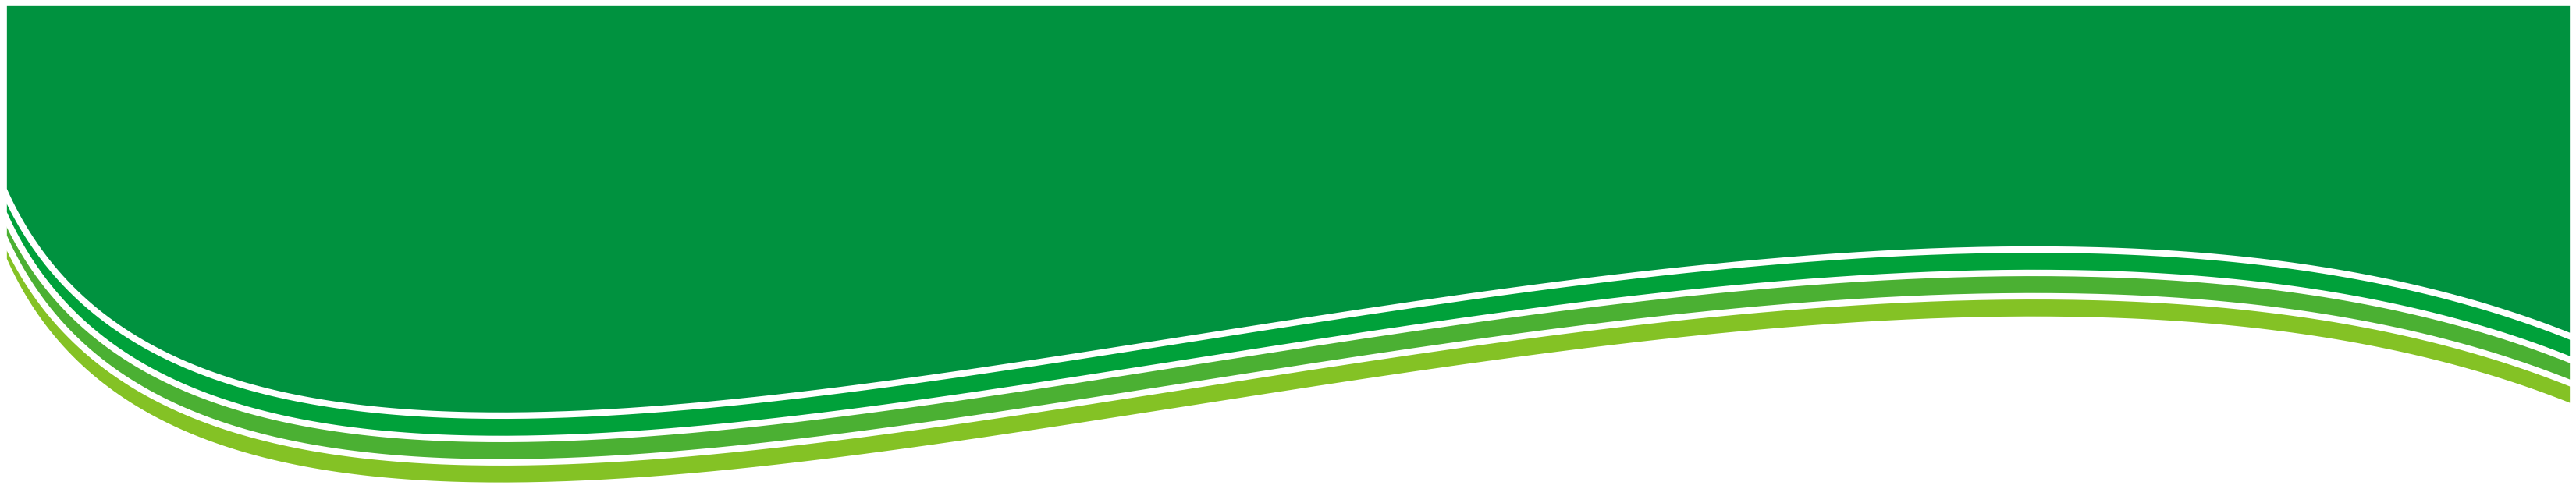 Banner verde png. Web resources images isixhosa